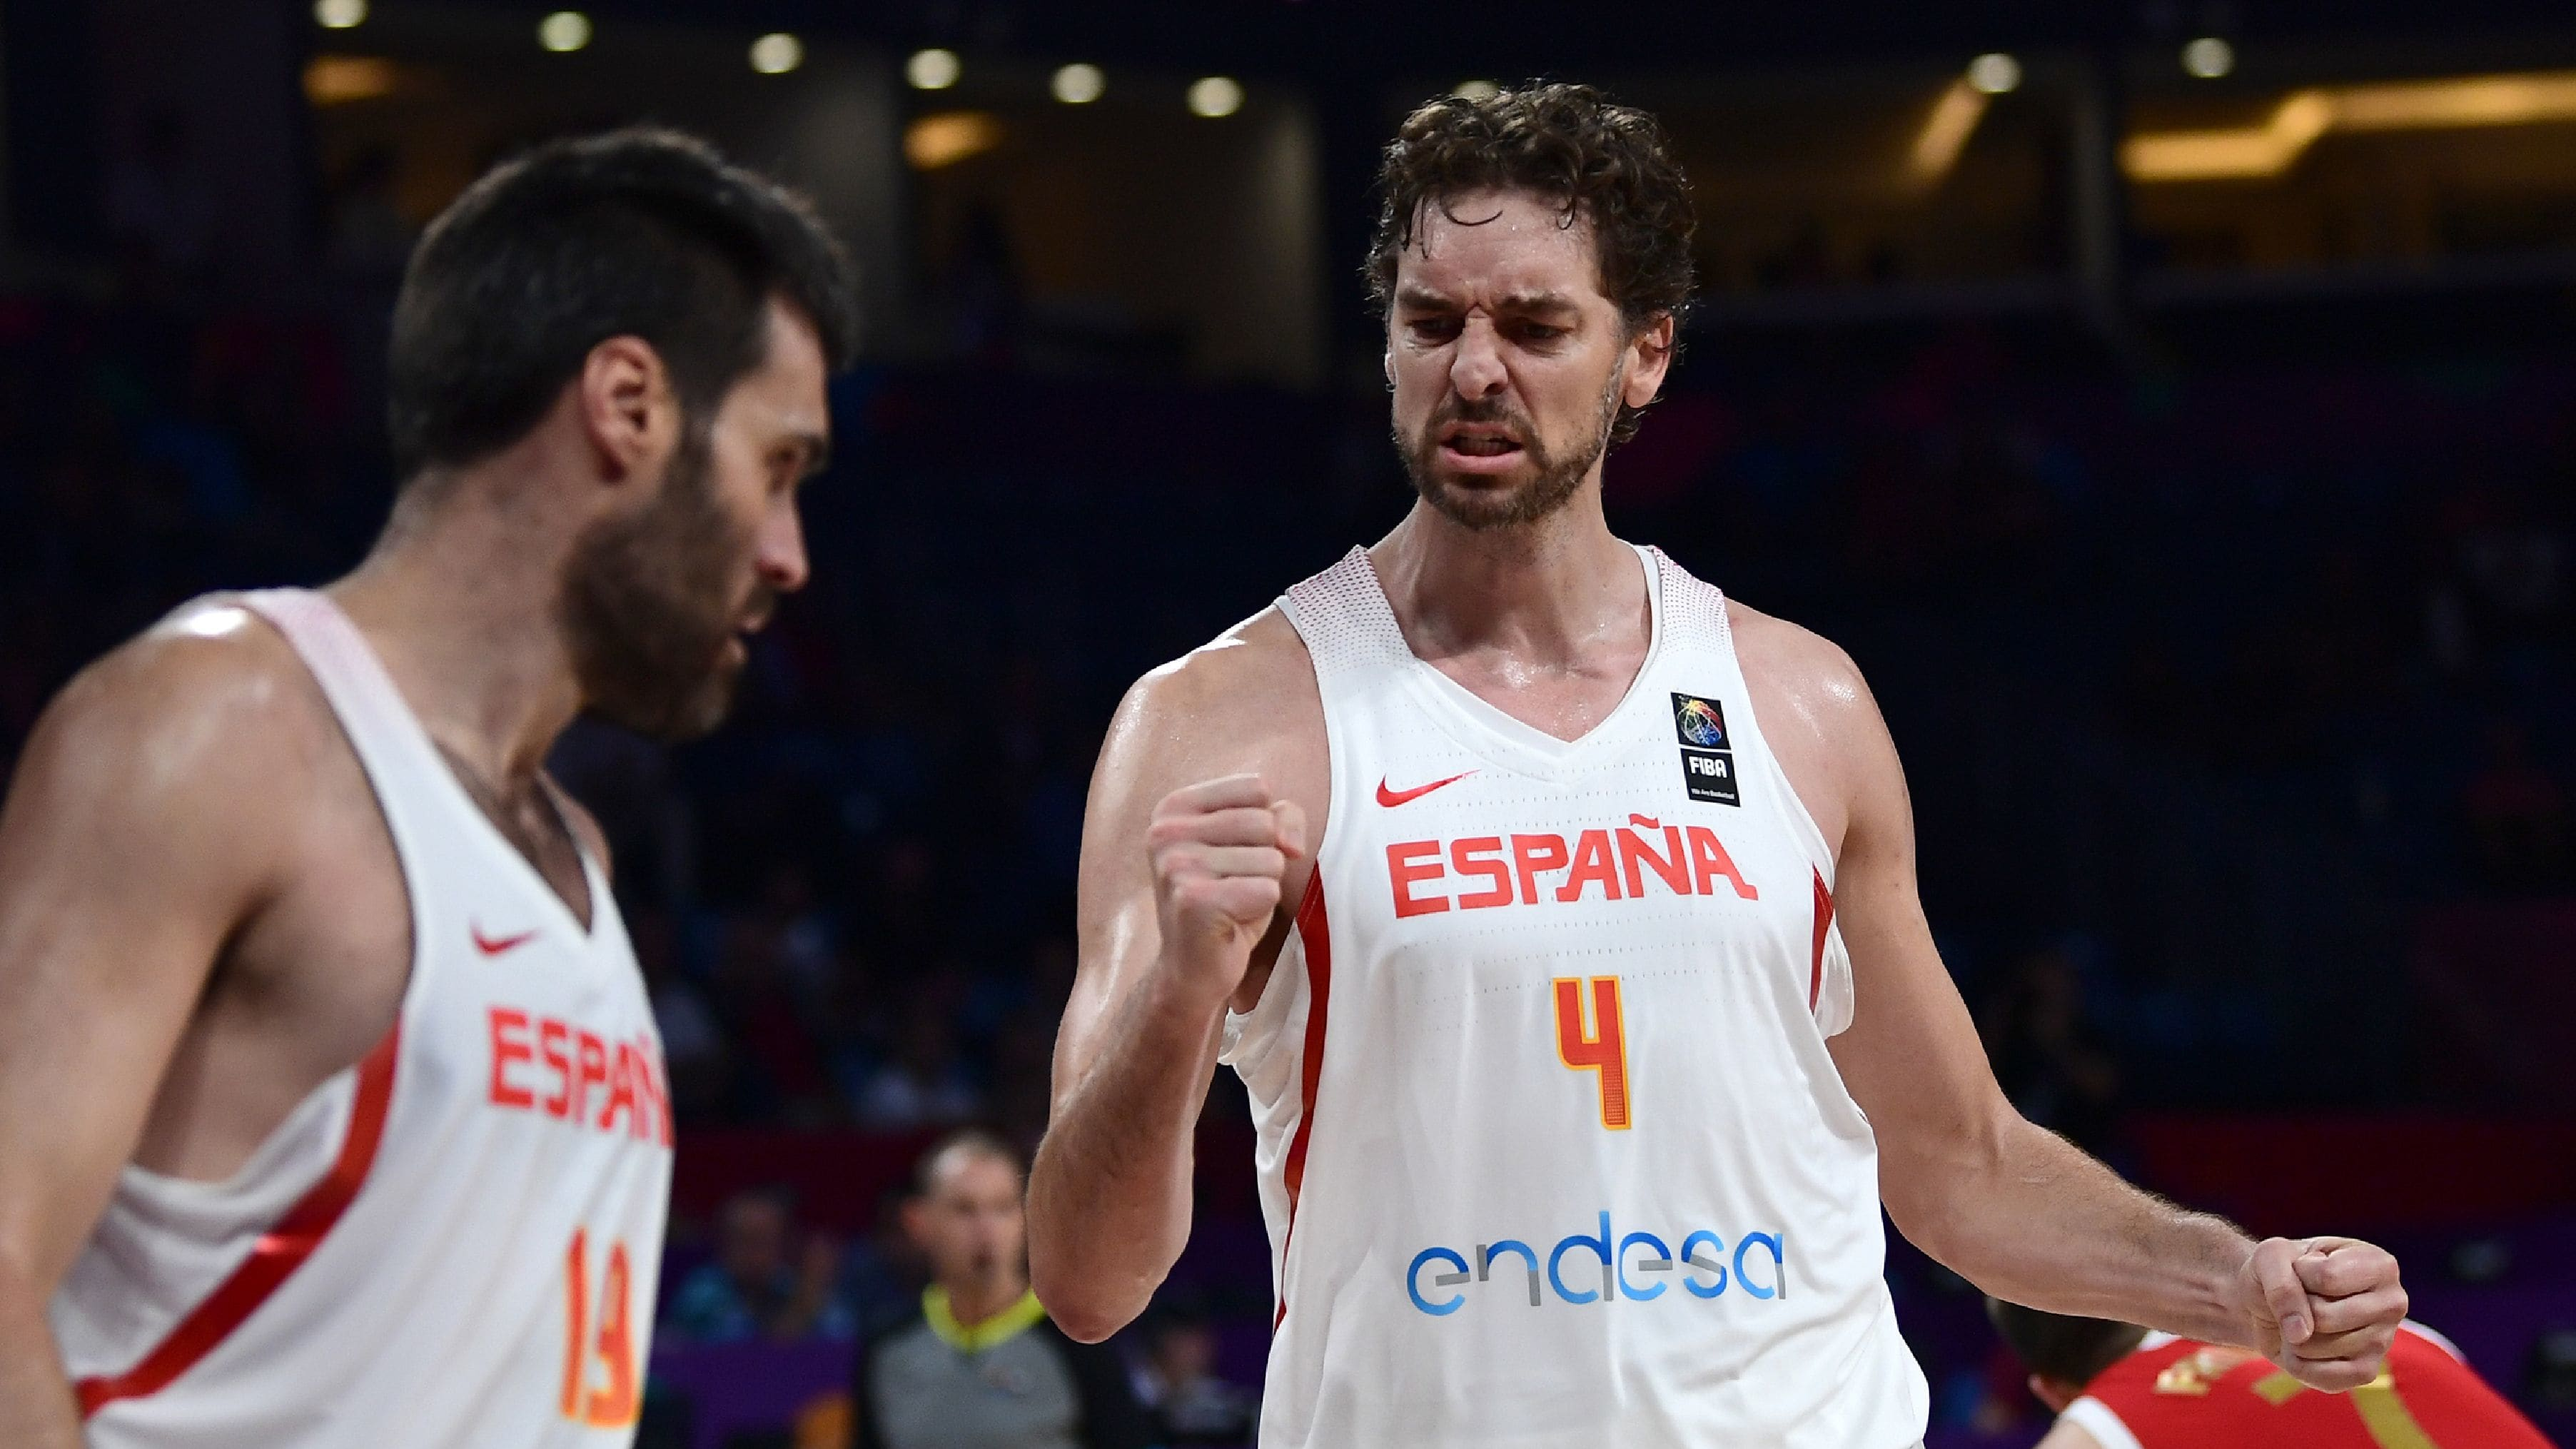 Spain's center Pau Gasol (R) reacts during the FIBA Euro basket 2017 men's 3rd game match between Spain and Russia at Fenerbahce Ulker Sport arena in Istanbul on September 17, 2017. / AFP PHOTO / OZAN KOSE        (Photo credit should read OZAN KOSE/AFP/Getty Images)